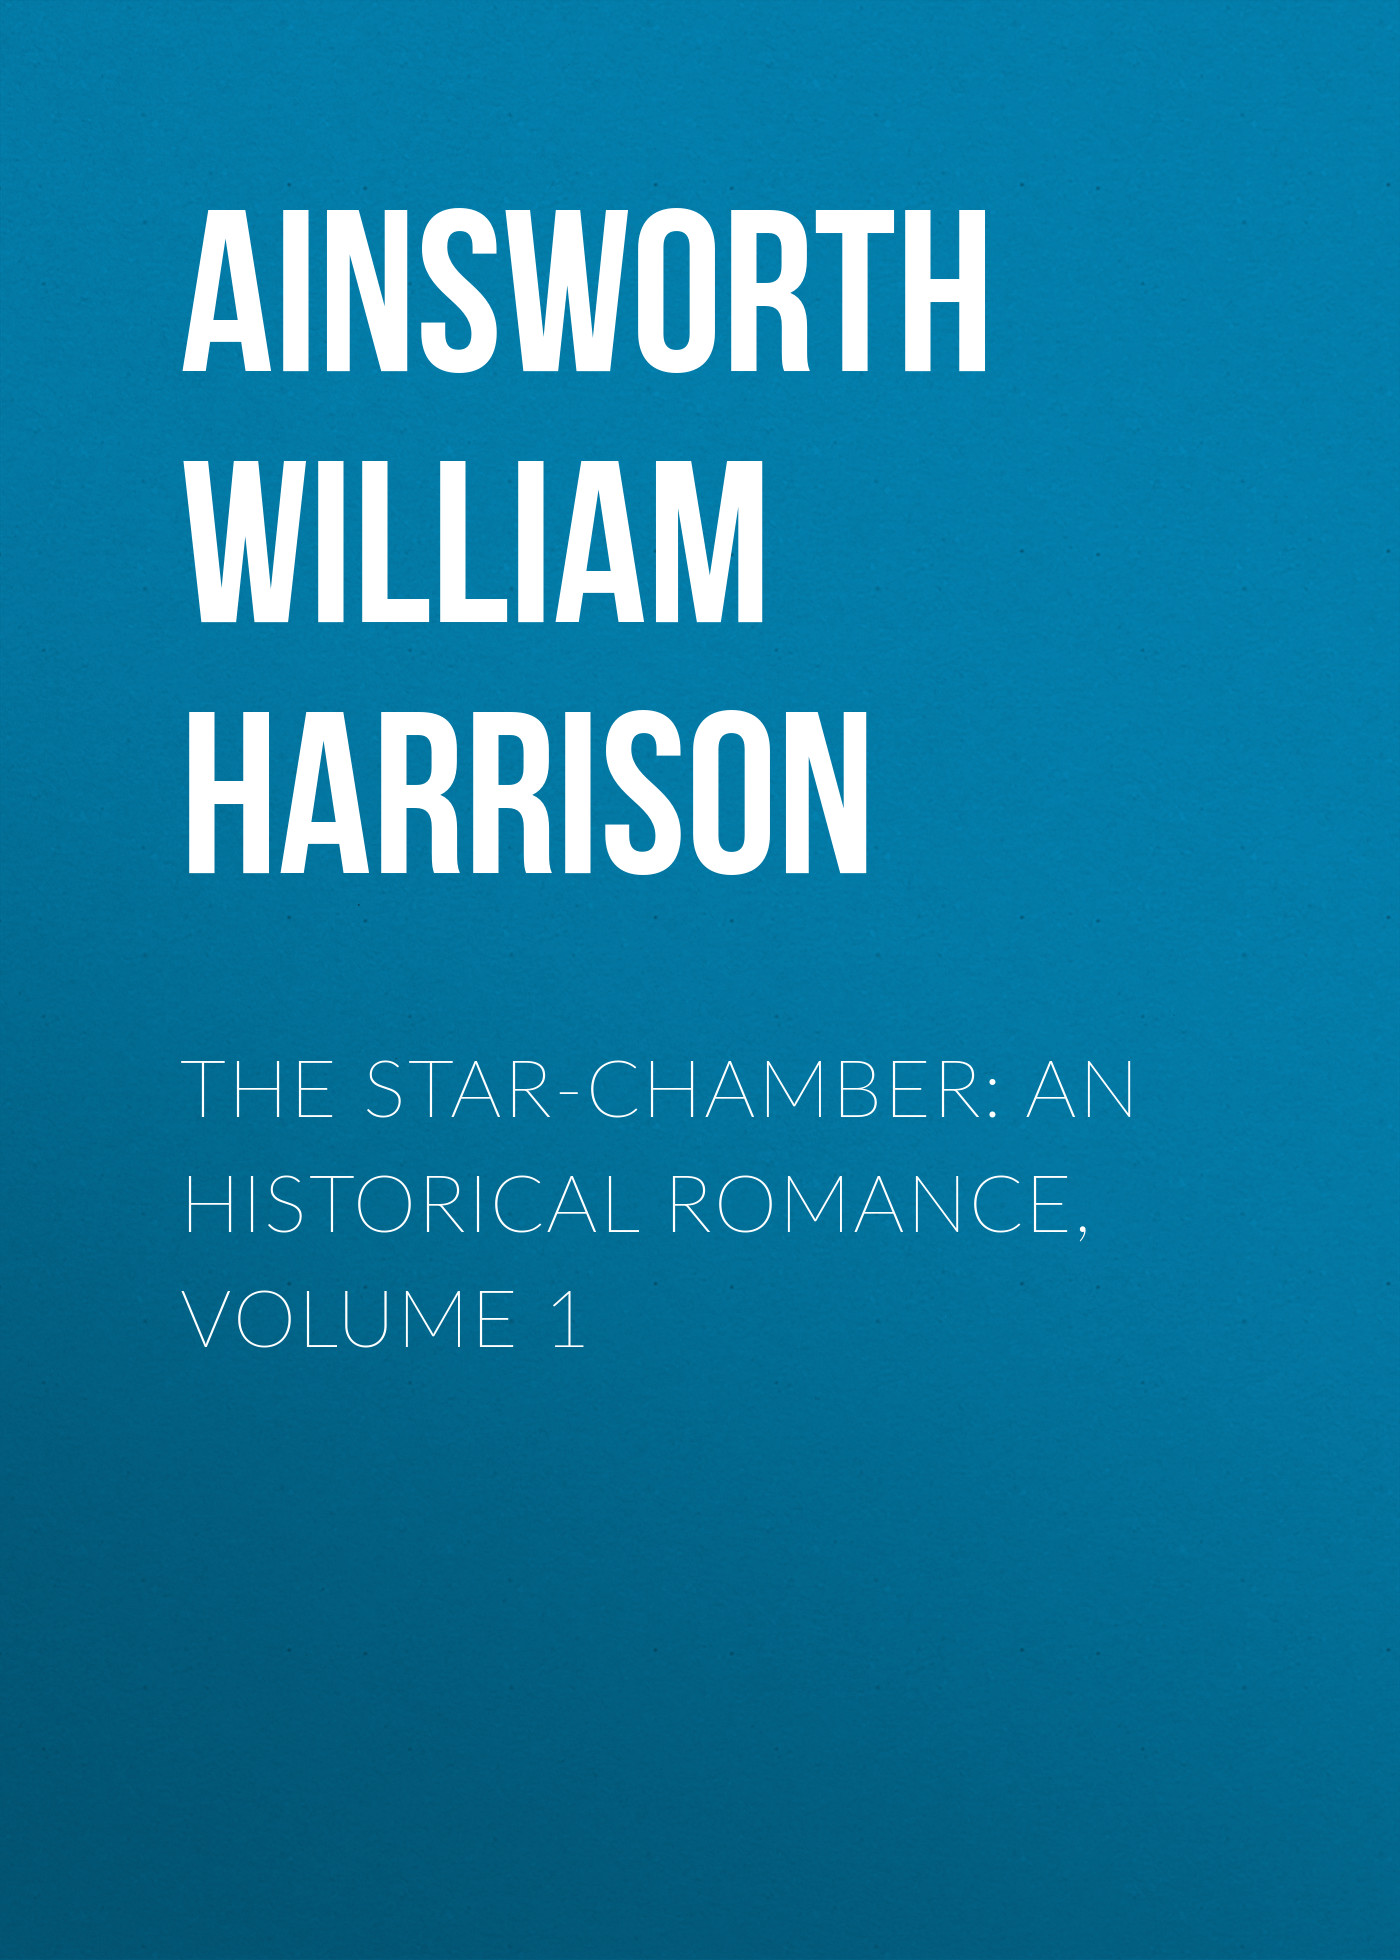 Ainsworth William Harrison The Star-Chamber: An Historical Romance, Volume 1